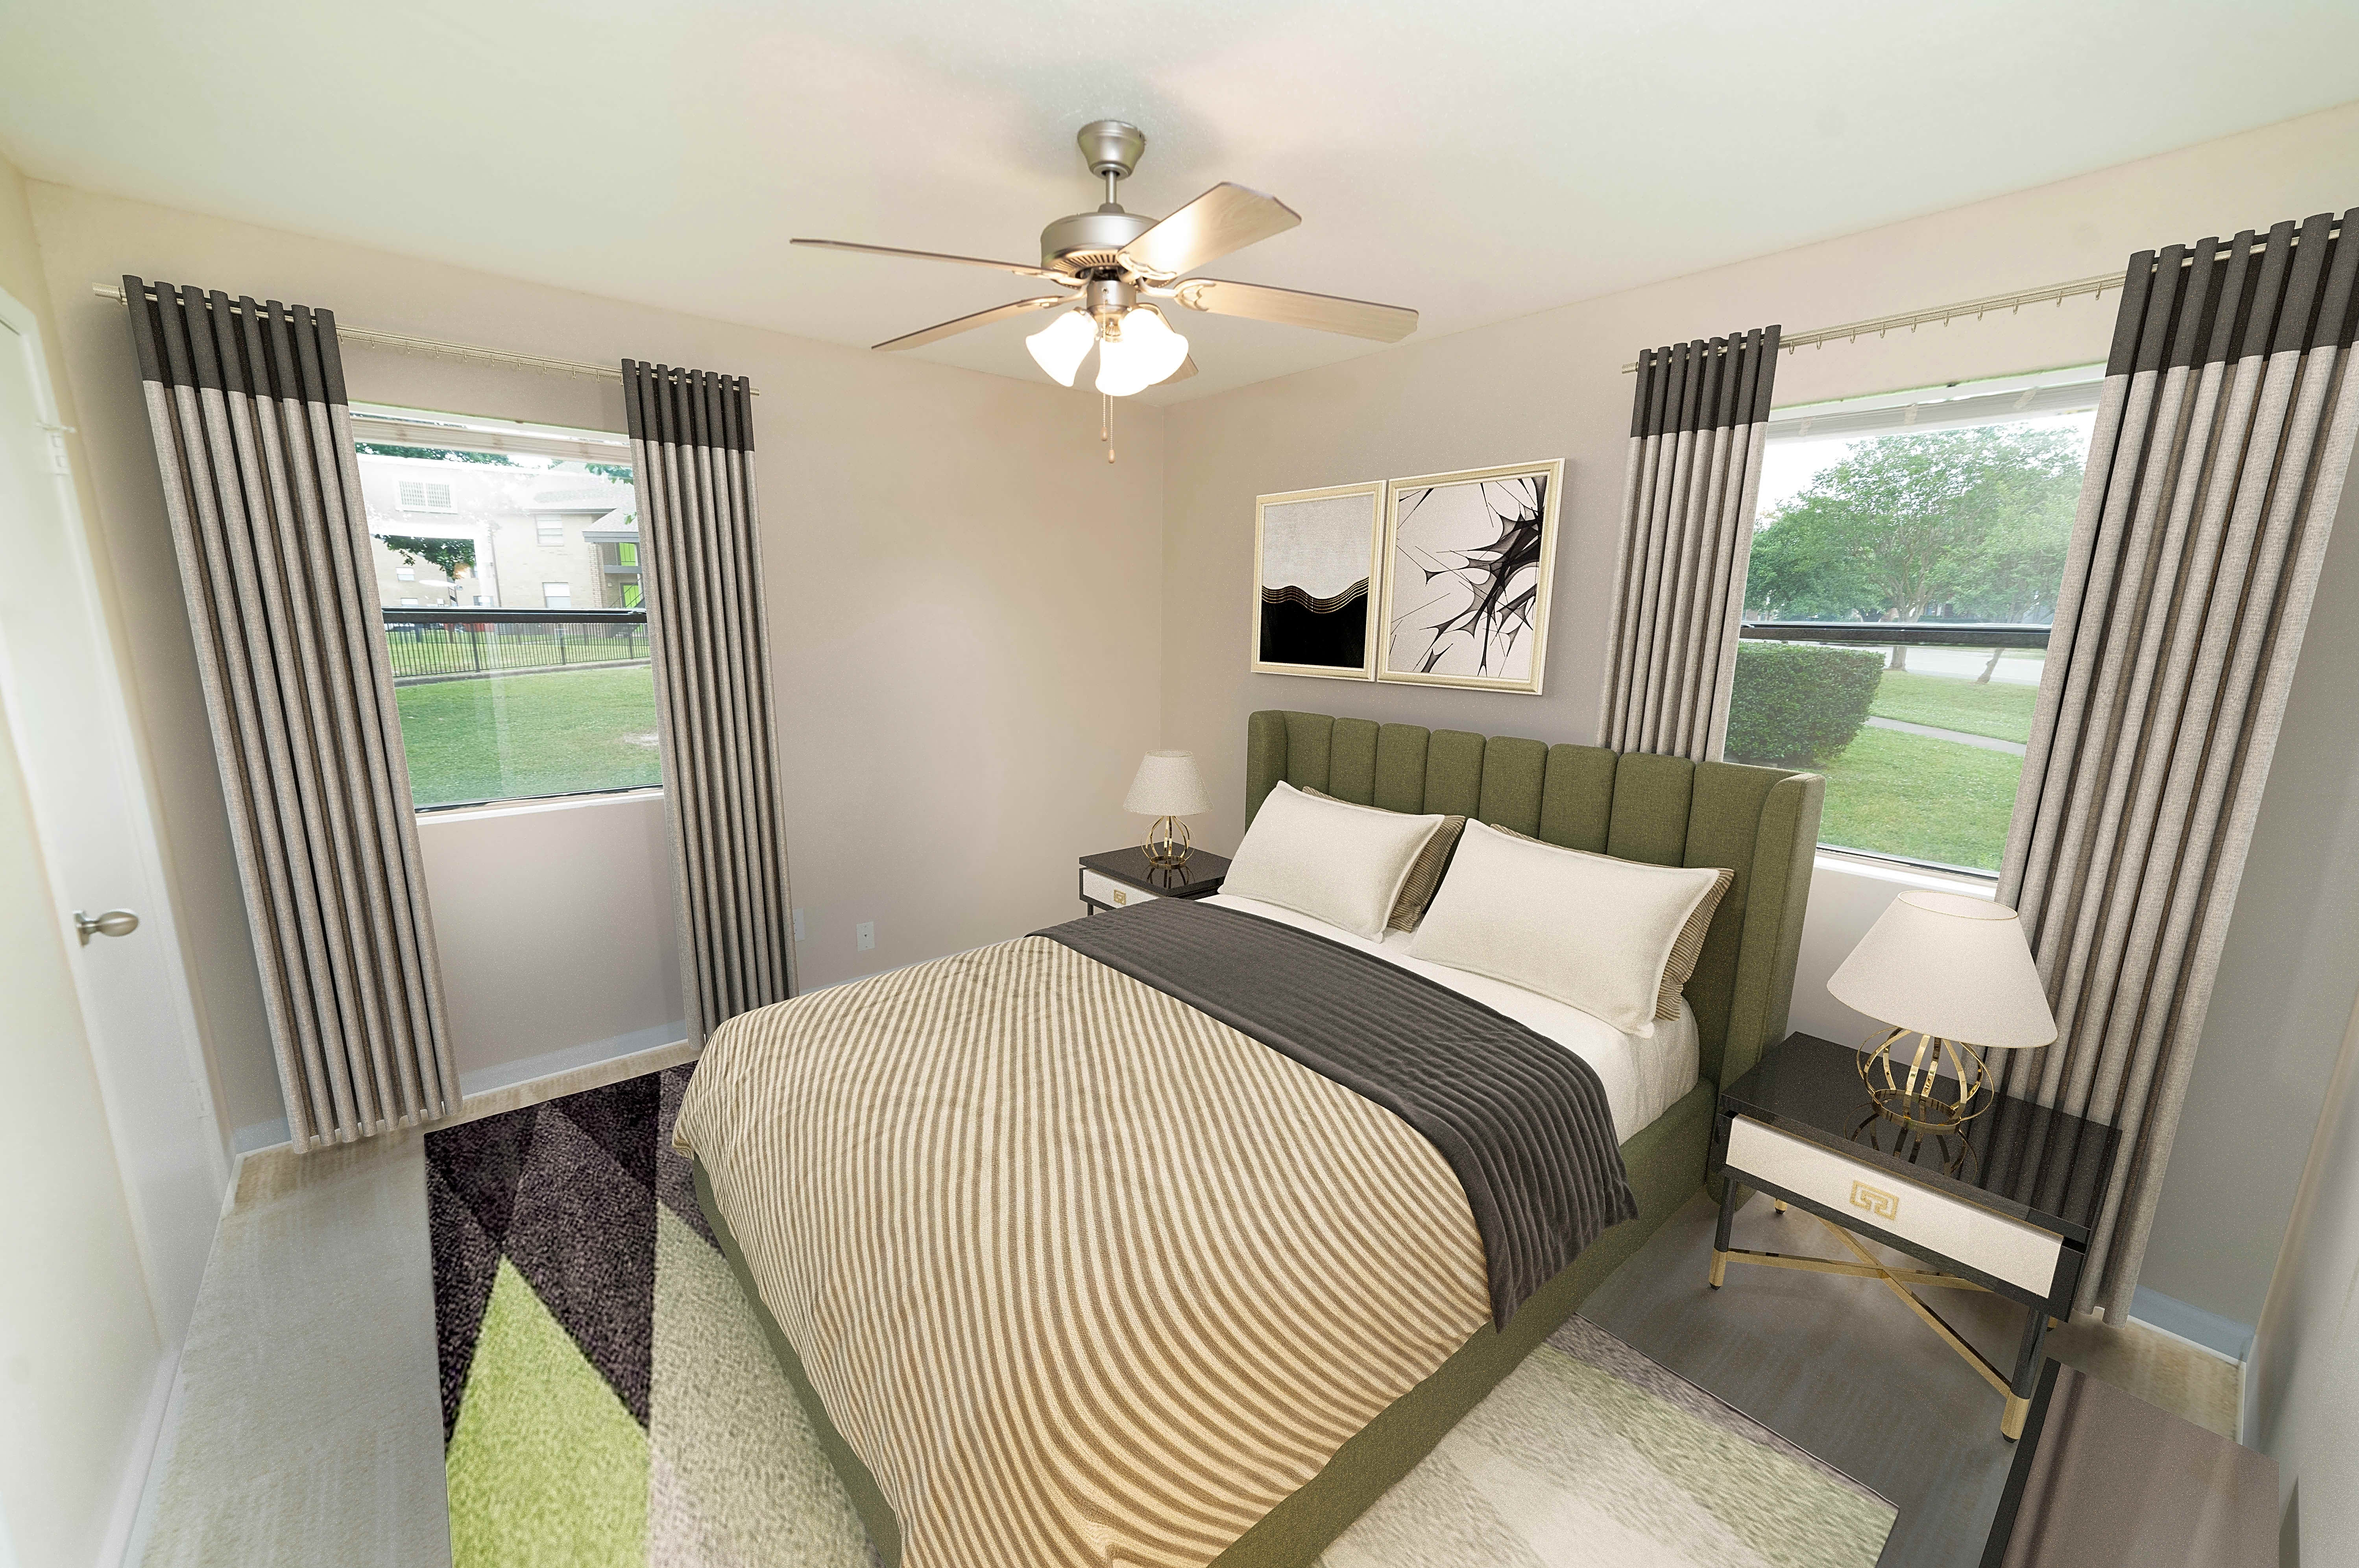 Apartments Near Texas A&M Renaissance Park for Texas A&M University Students in College Station, TX